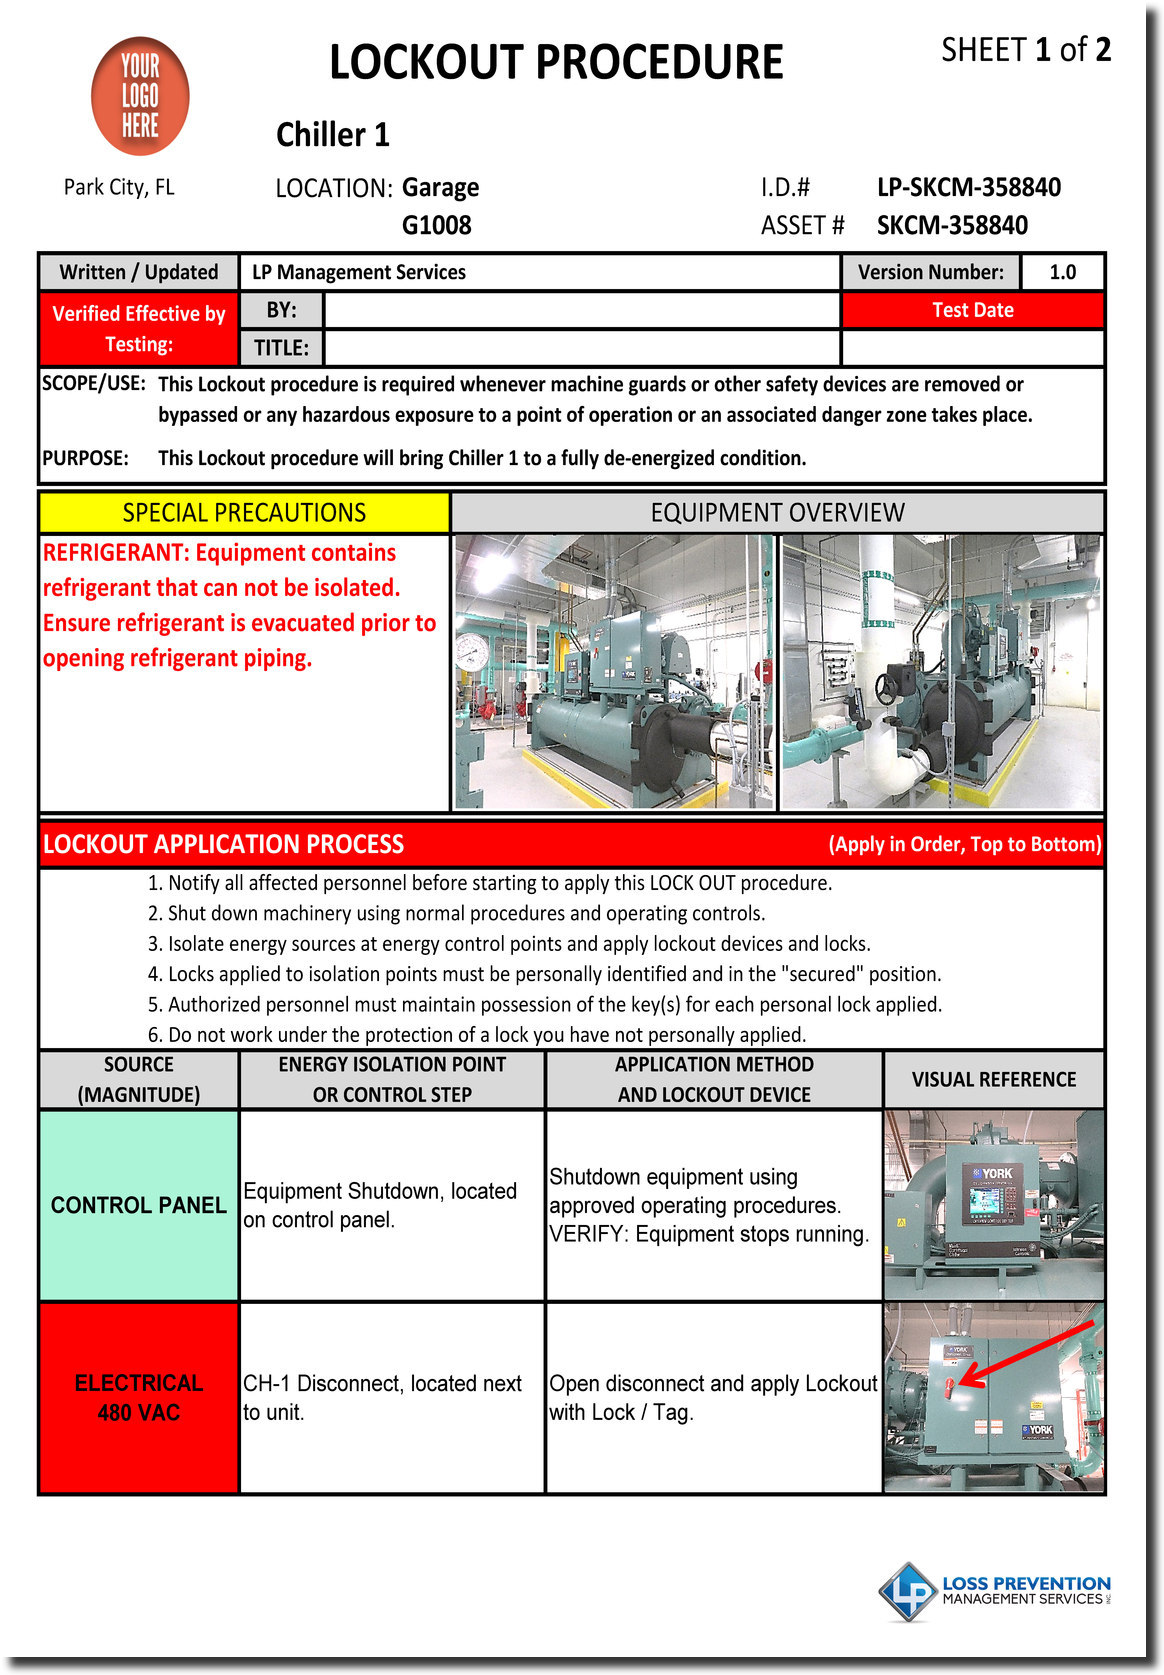 lockout tagout procedures development lp management services